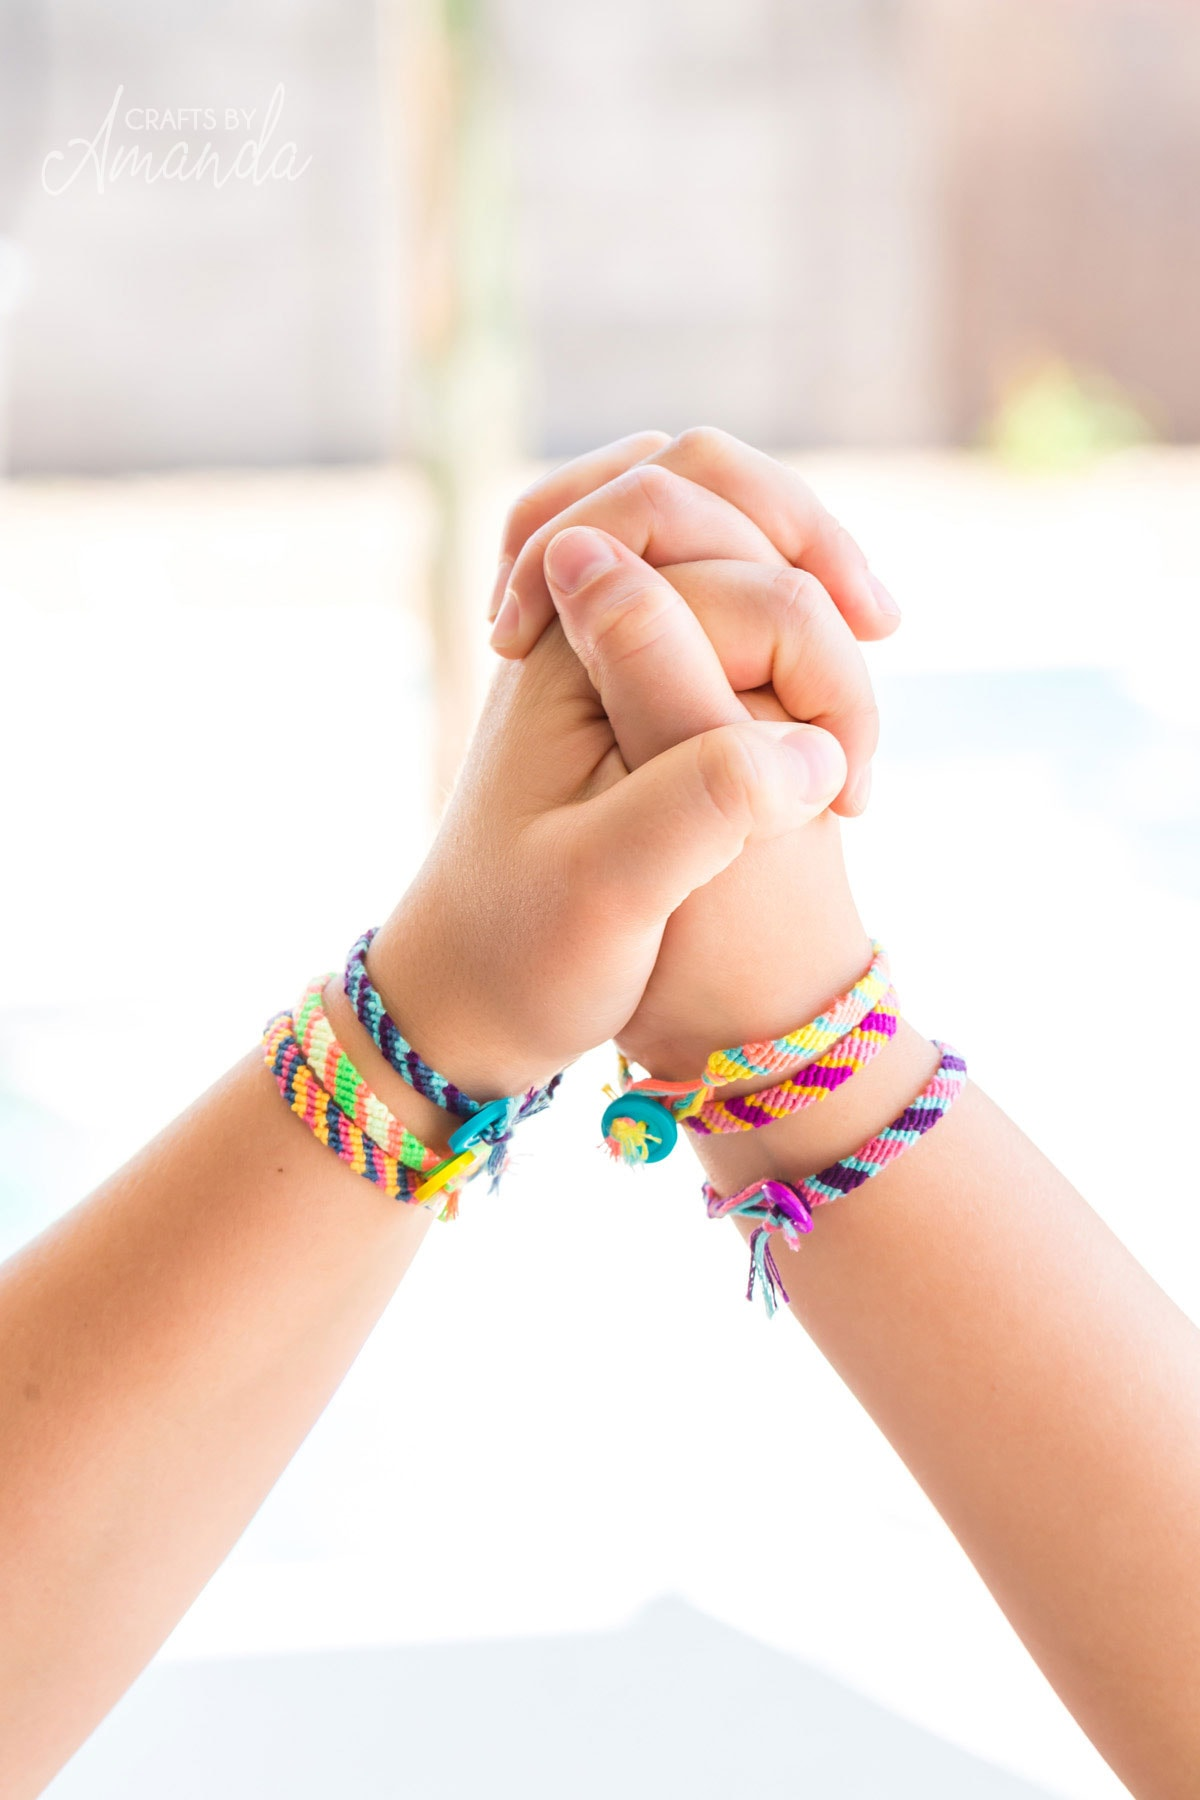 two girl's holding hands wearing the friendship bracelets they made